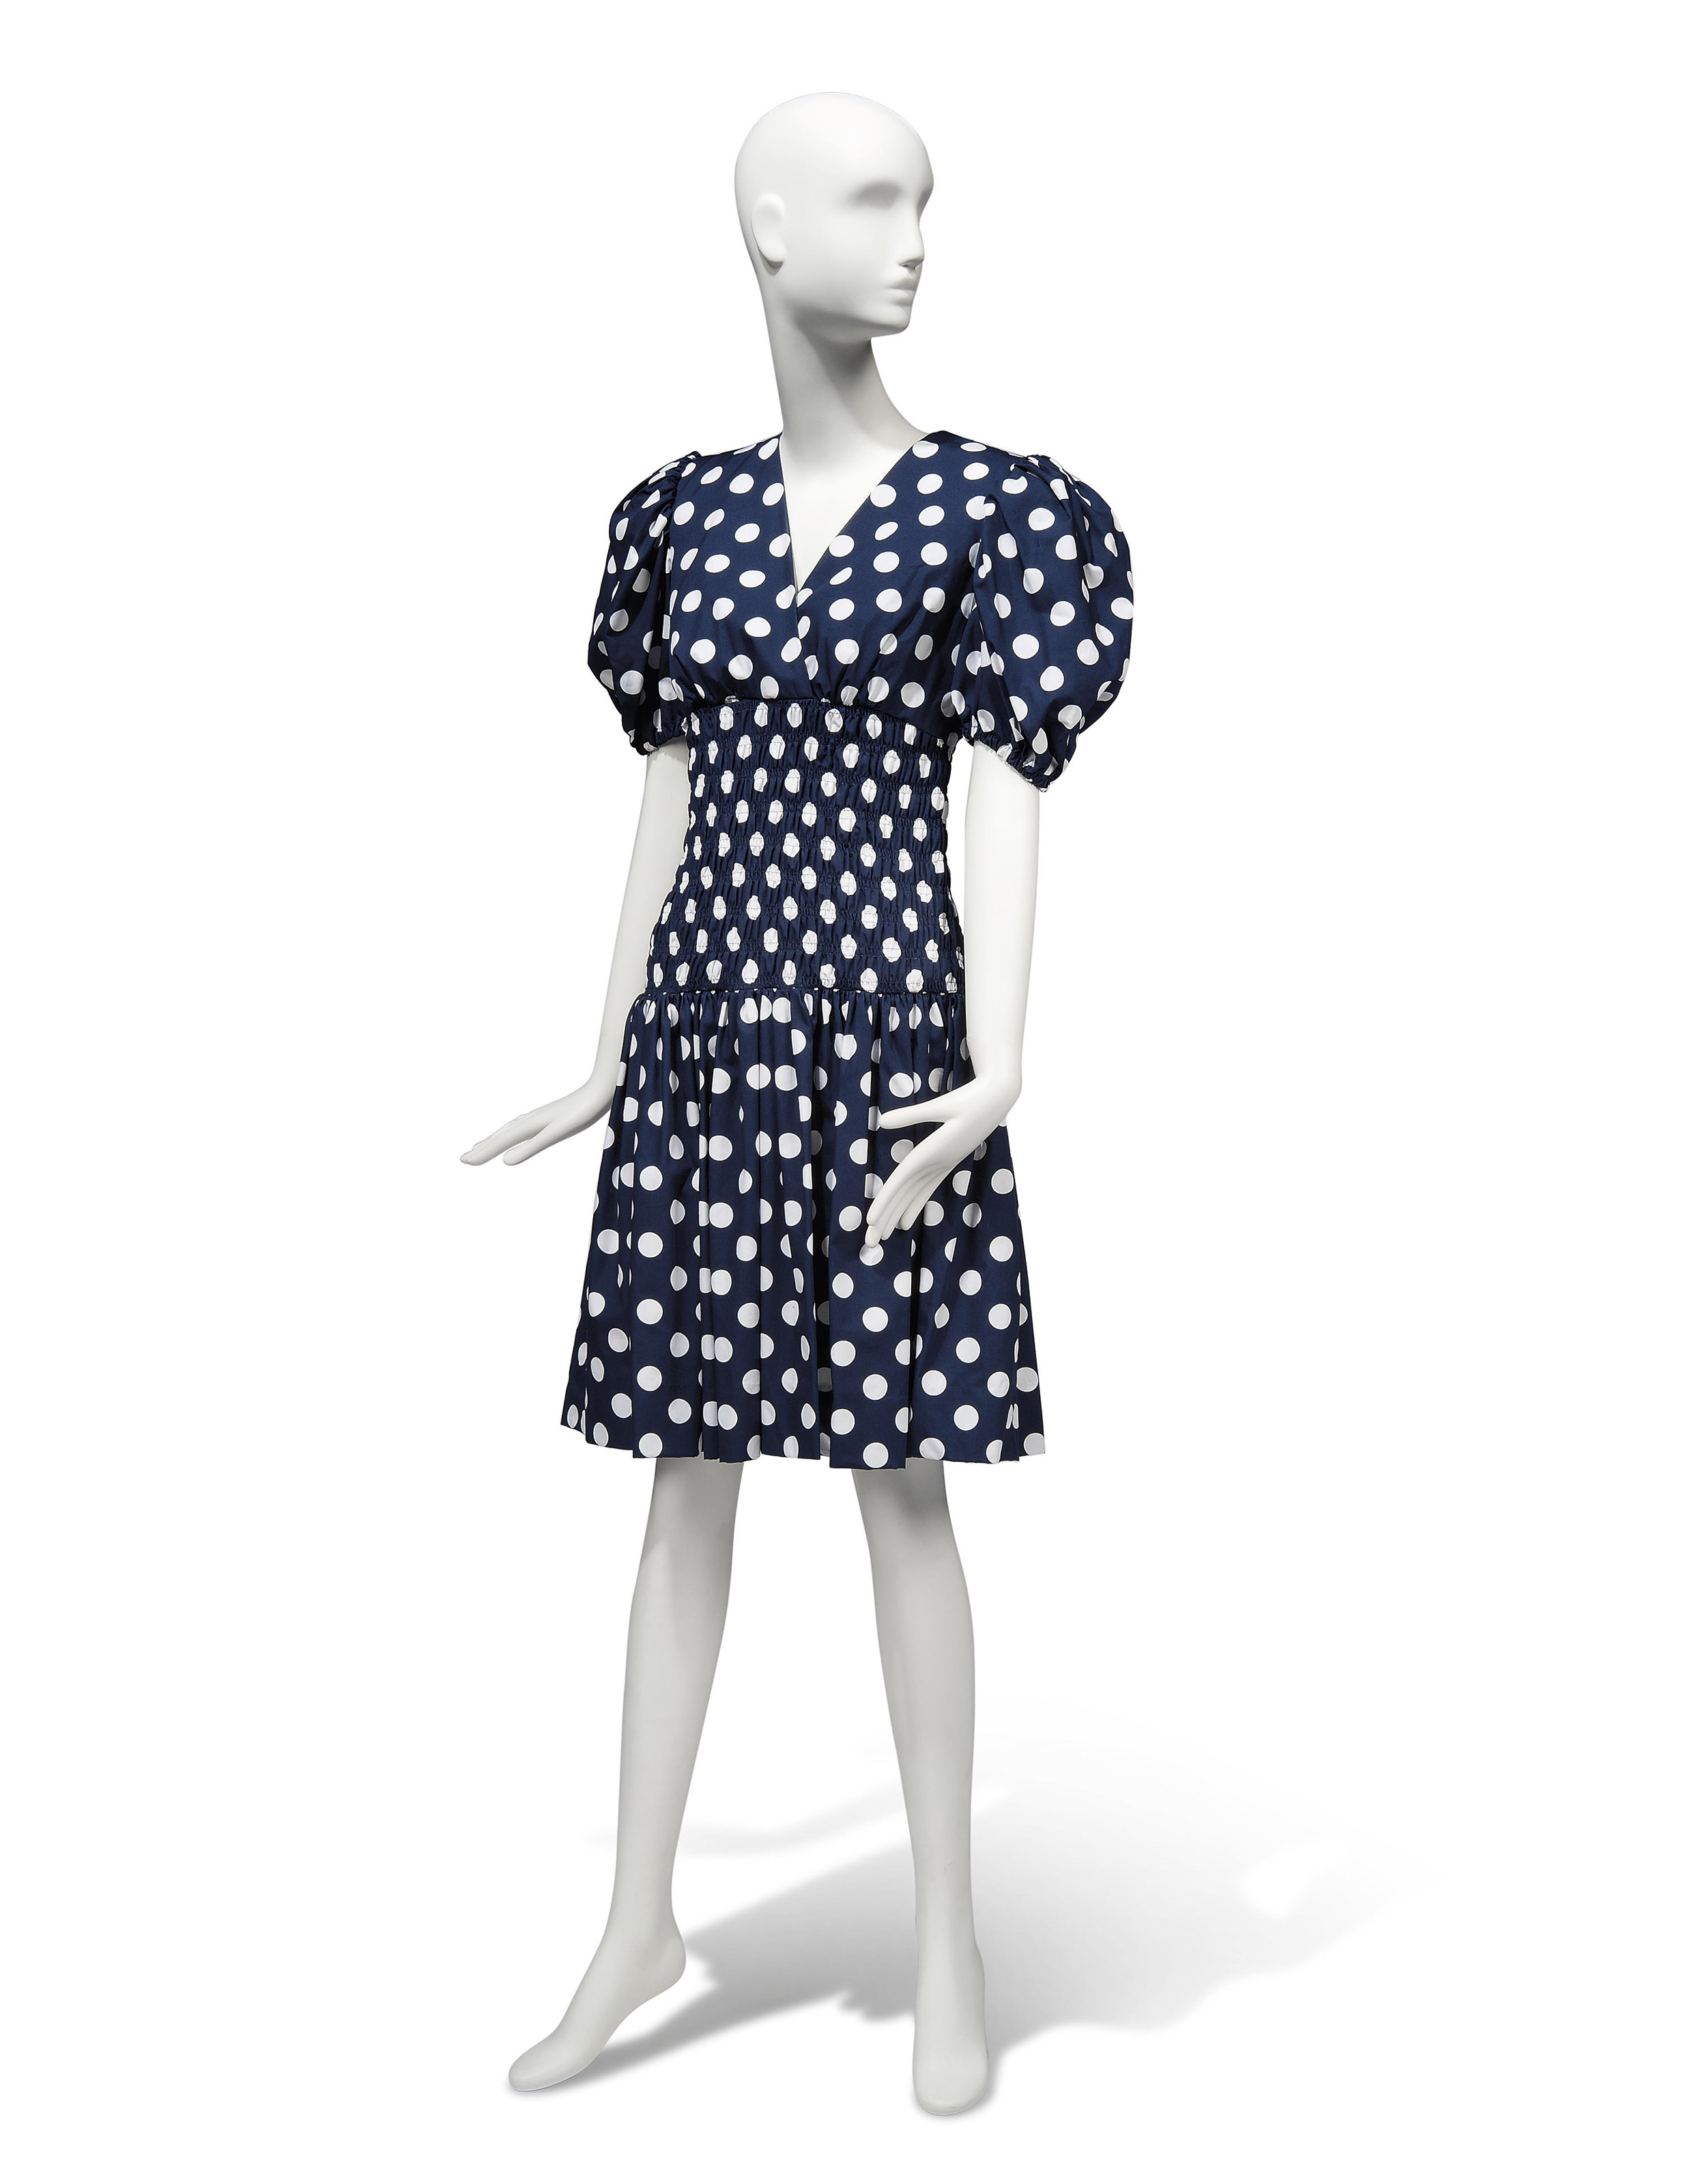 A NAVY AND WHITE POLKADOT COTTON SUMMER DRESS